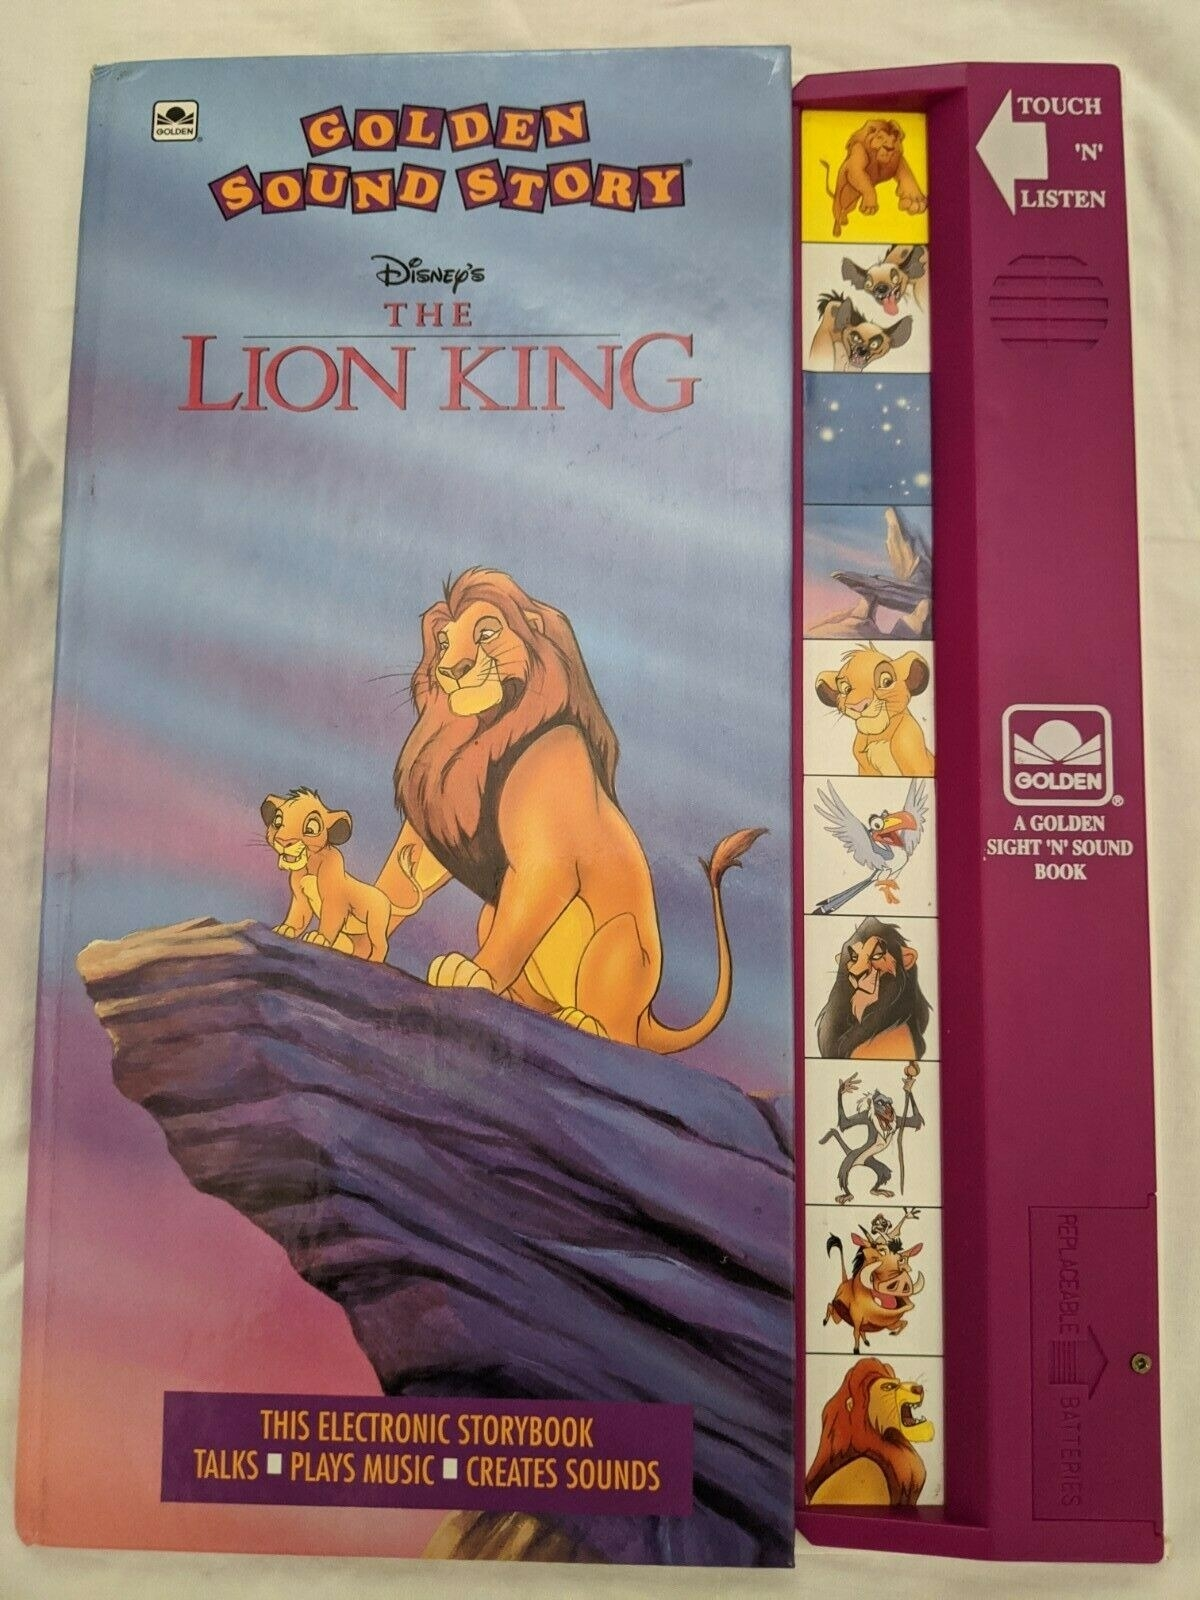 A photo of a Lion King Disney Golden Sound Story book, which has a purple touch pad with the characters faces on it.